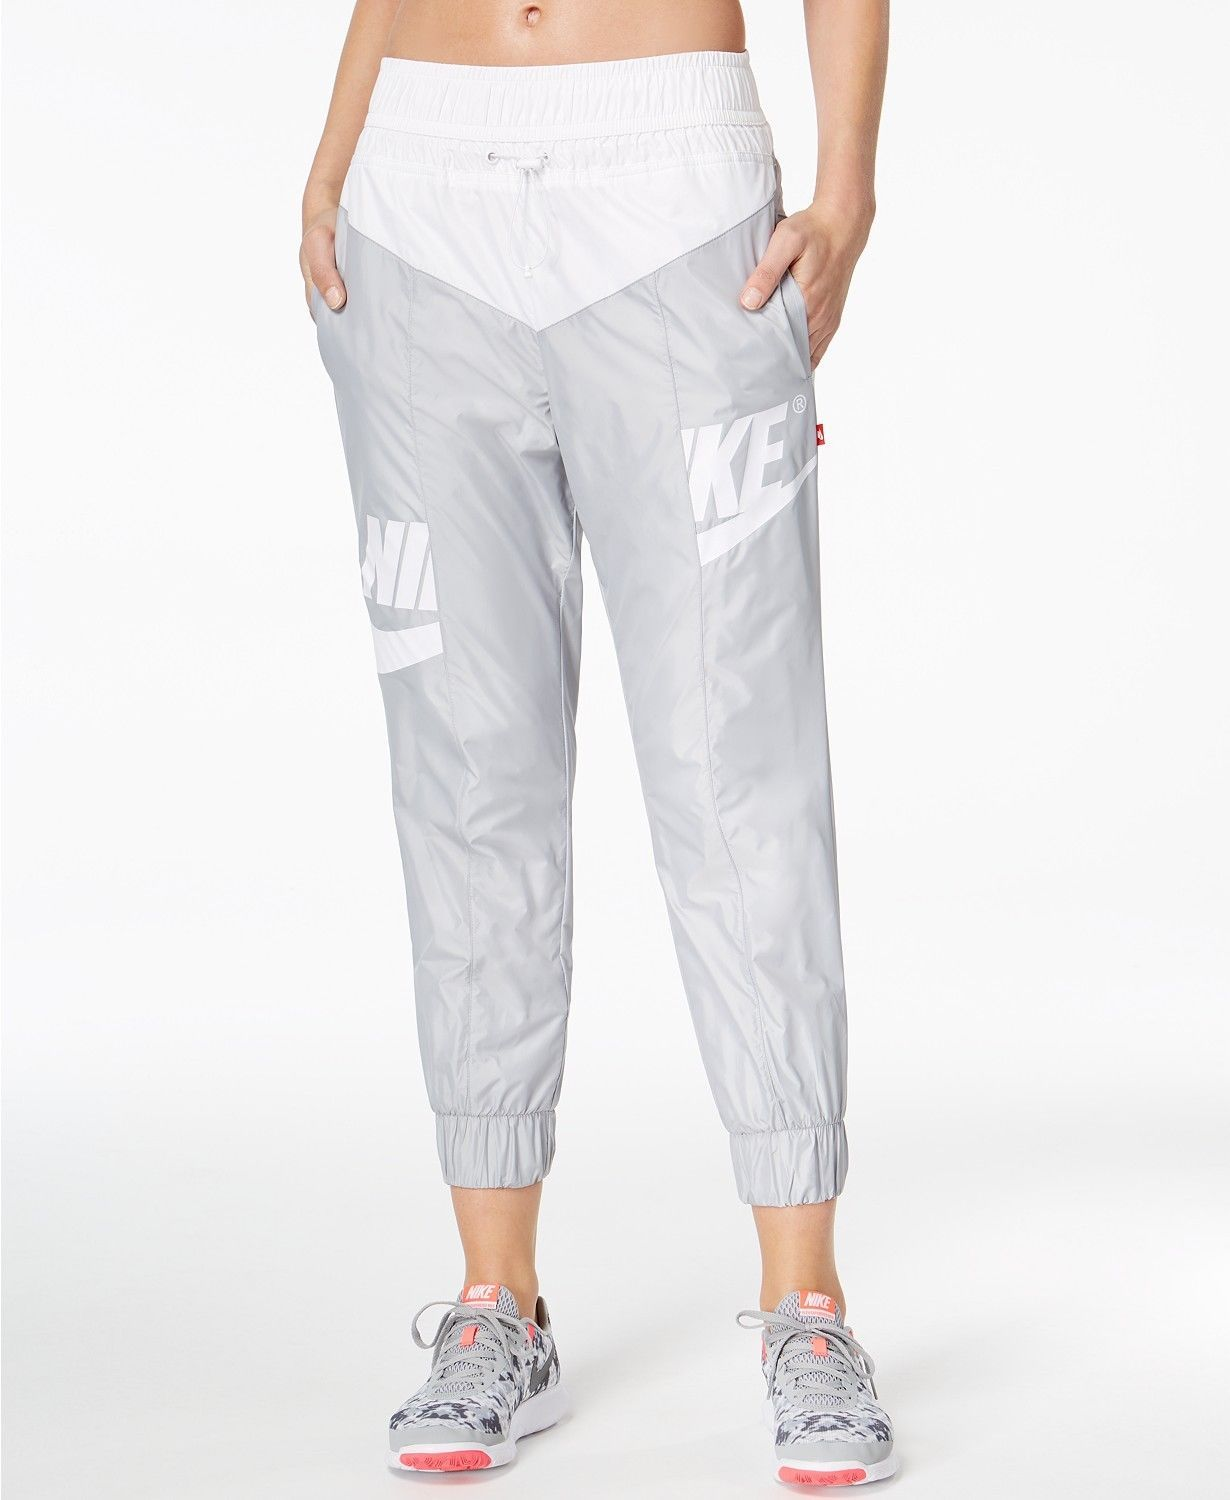 new arrival b2c1f 03559 Nike Women s Futura Colorblocked Pants and 50 similar items. S l1600